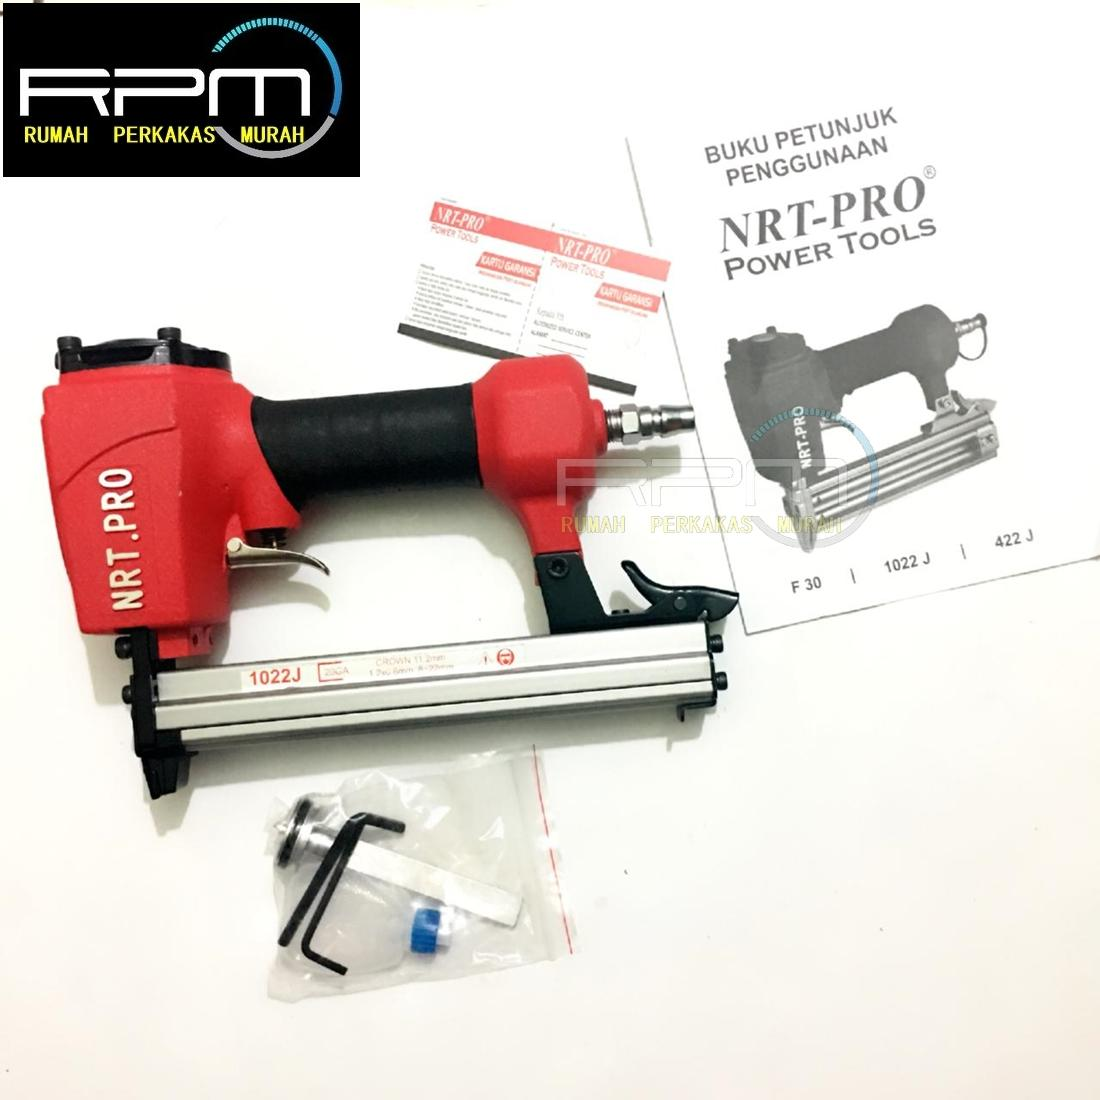 Mesin Staples Air Nailer 1022J NRT-PRO / Staples Angin Tembak Paku